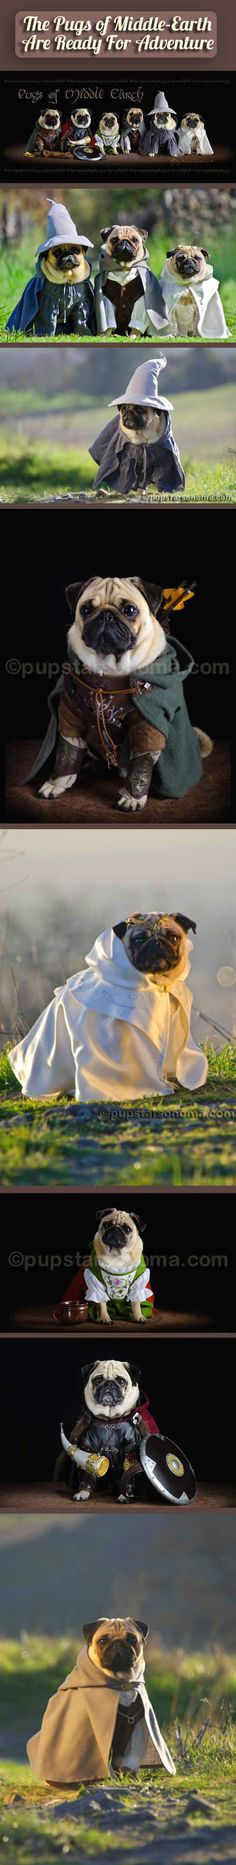 Pugs of Middle Earth.